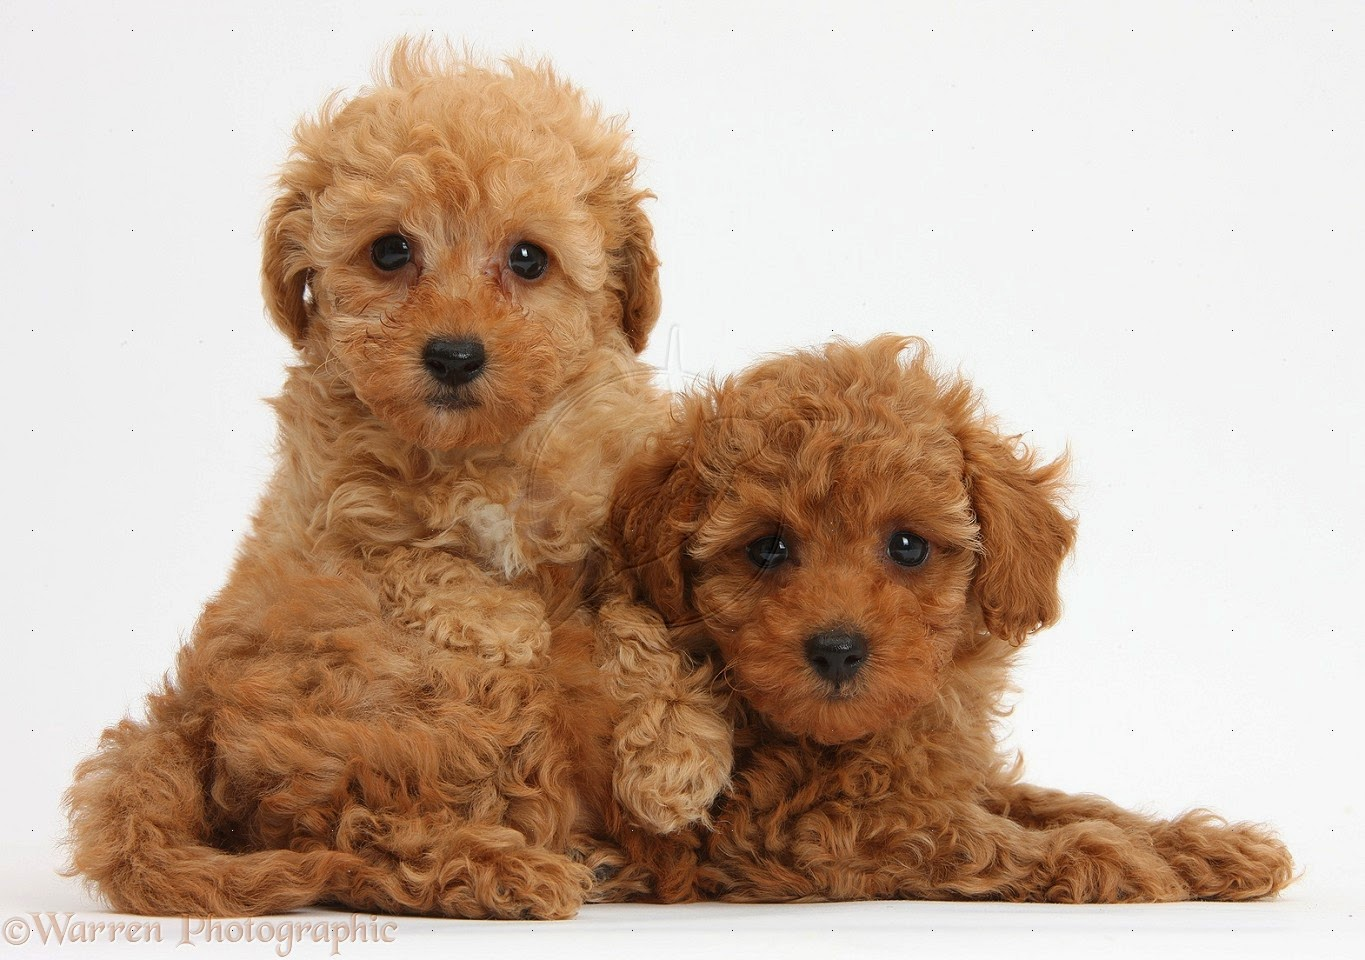 Personality Traits of a Jack Russell Terrier and Poodle ... |Cute Poodle Puppies